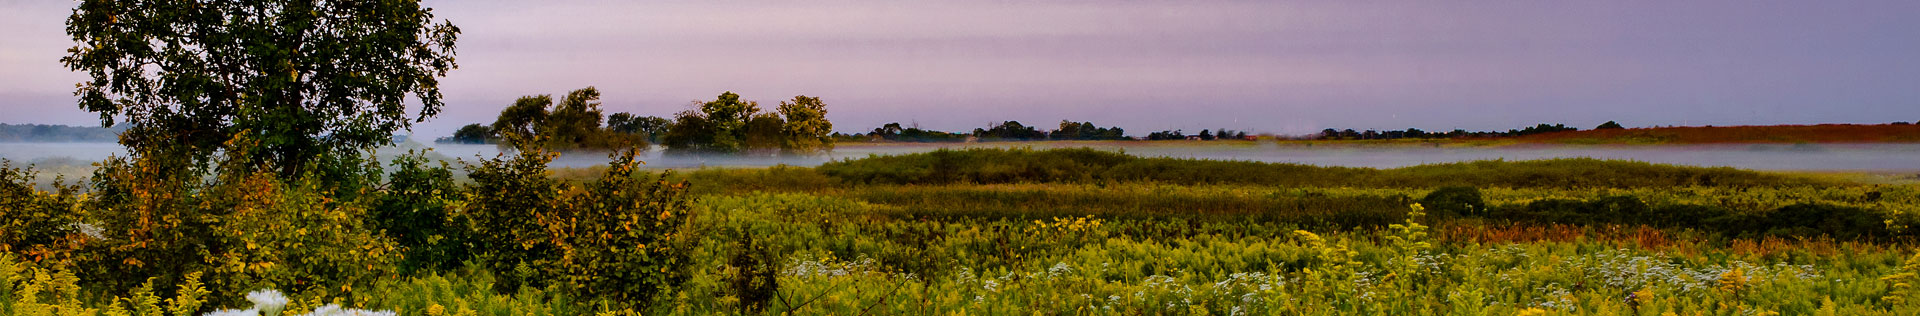 Rolling mists over a wild prairie